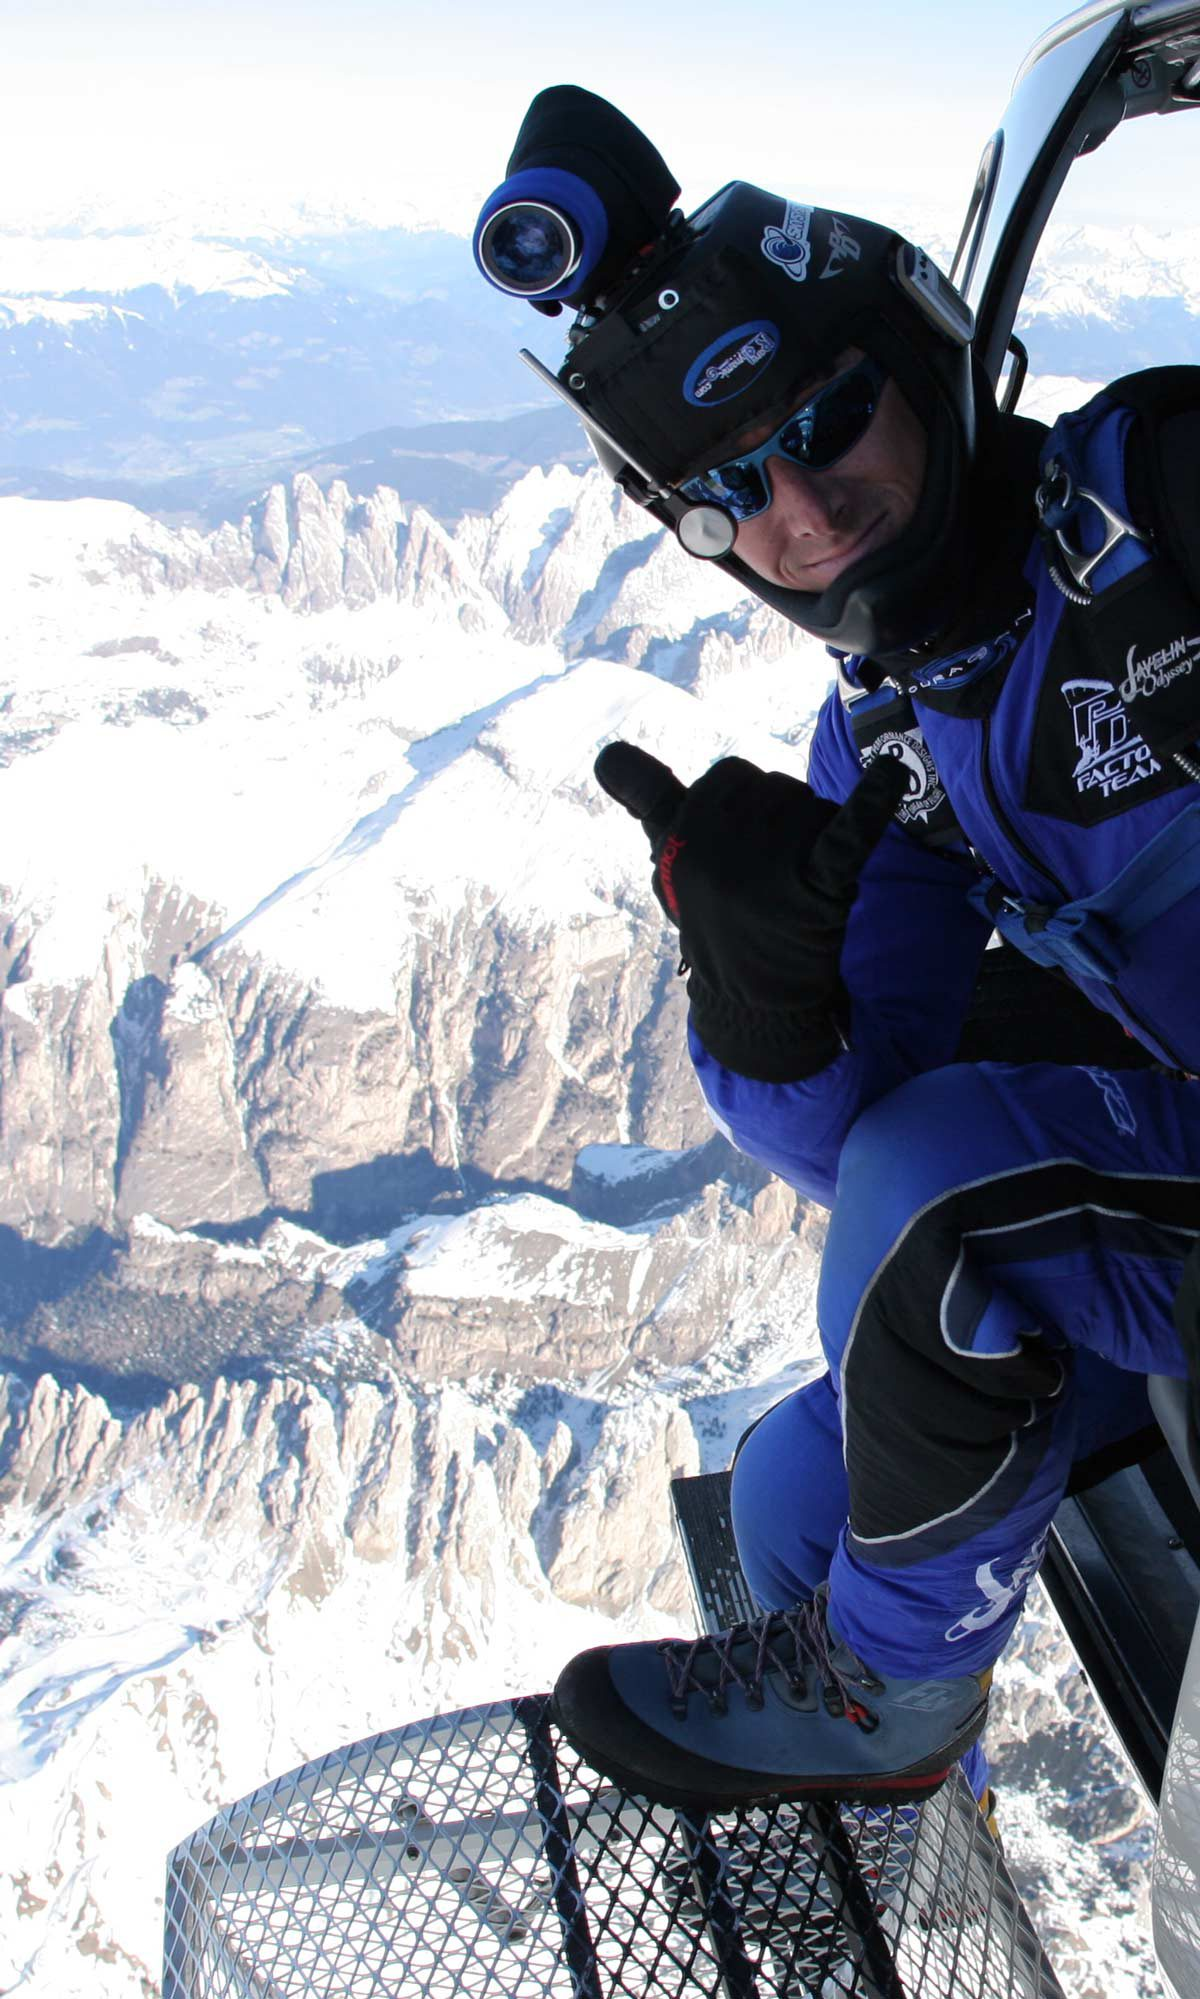 Shannon Pilcher gives thumbs up before exiting to skydive over snowy mountains